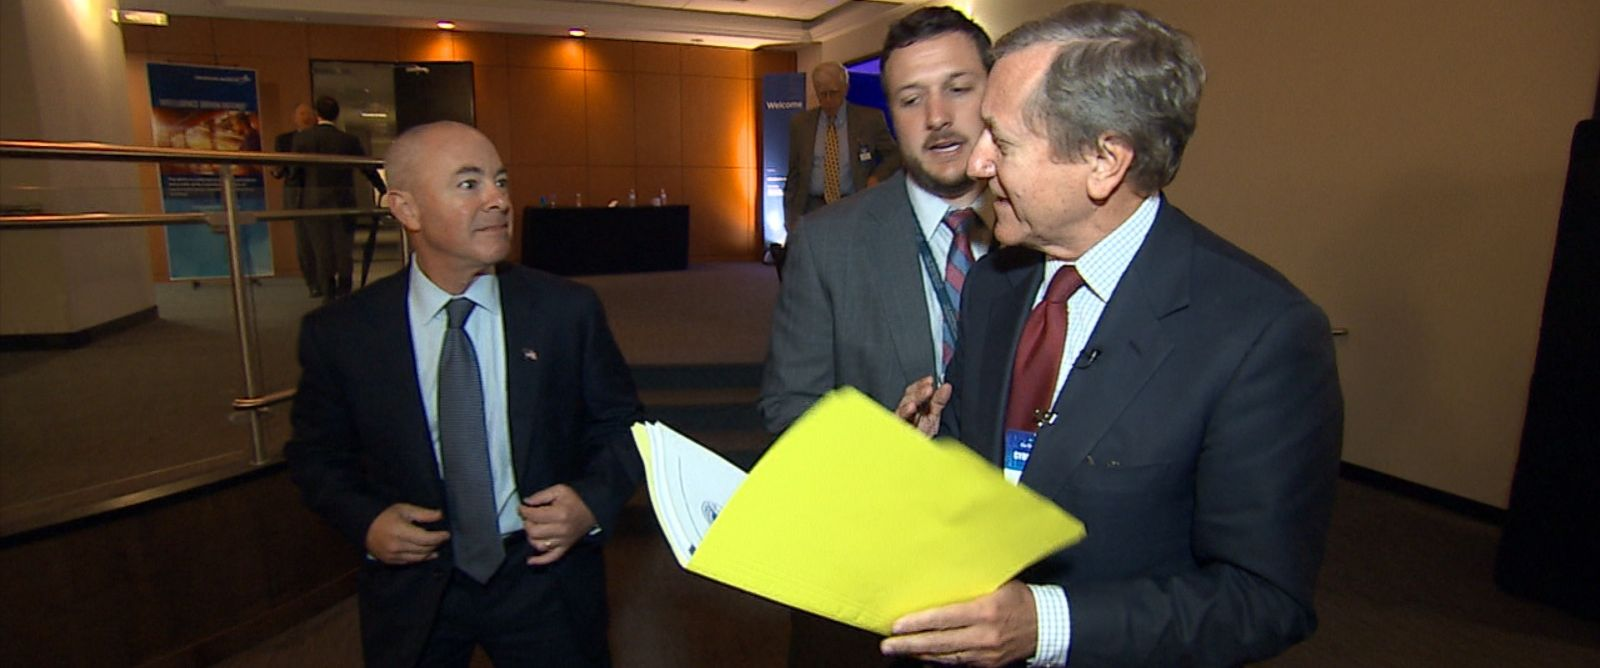 PHOTO: Deputy Secretary of Homeland Security Alejandro Mayorkas declines to answer questions on camera from ABC News Chief Investigative Correspondent Brian Ross.